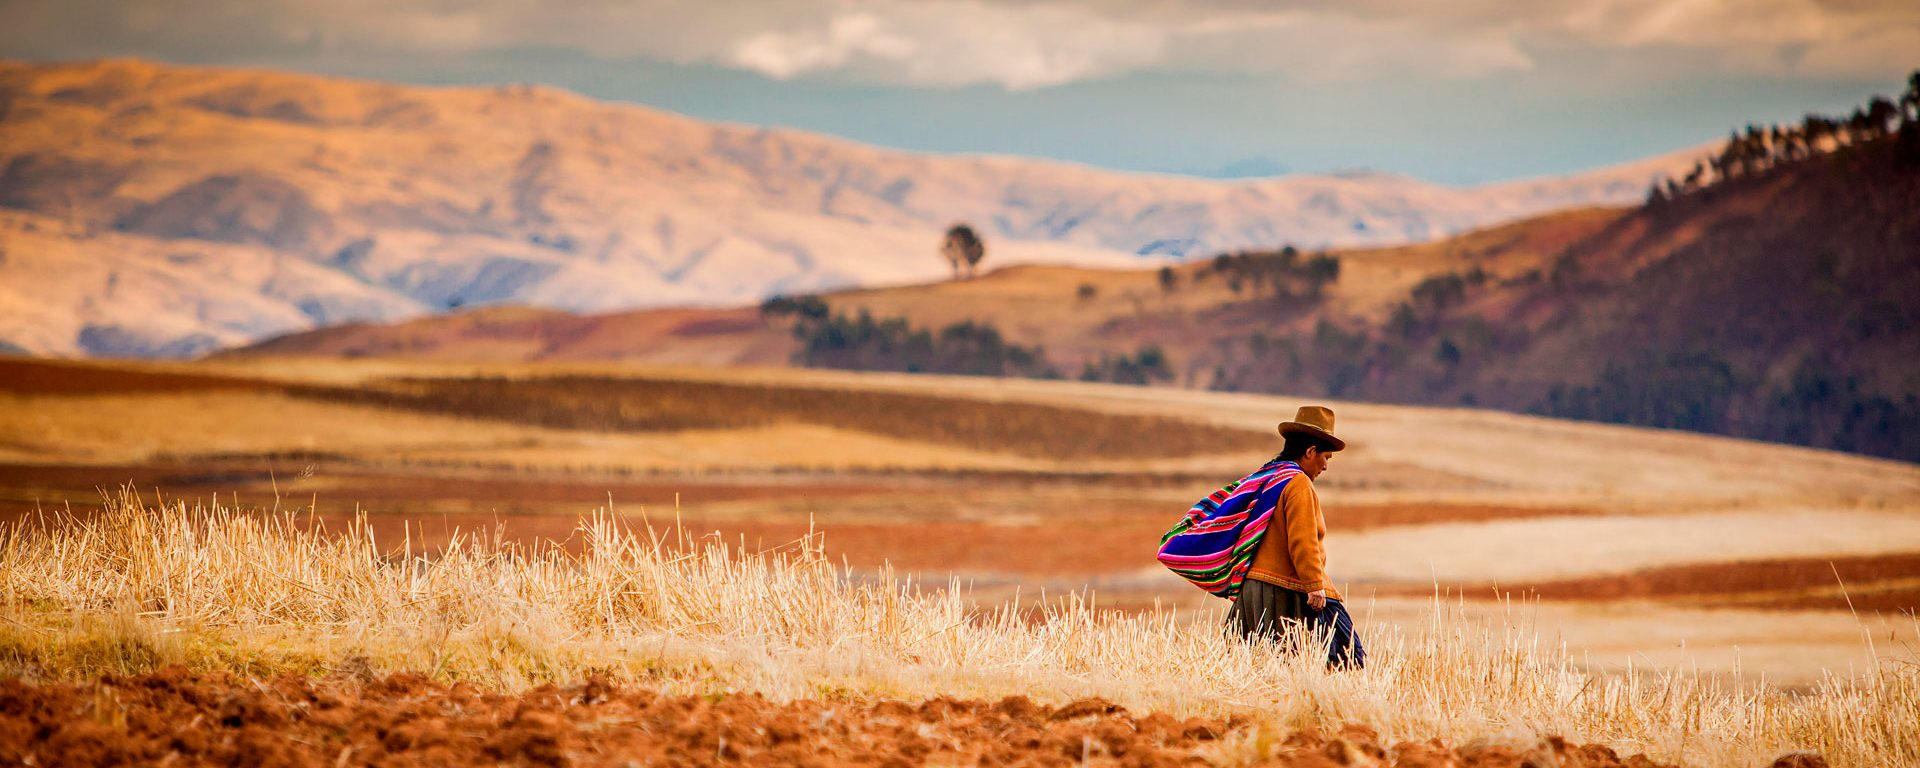 Farmer walking home at sunset, Sacred Valley, Peru